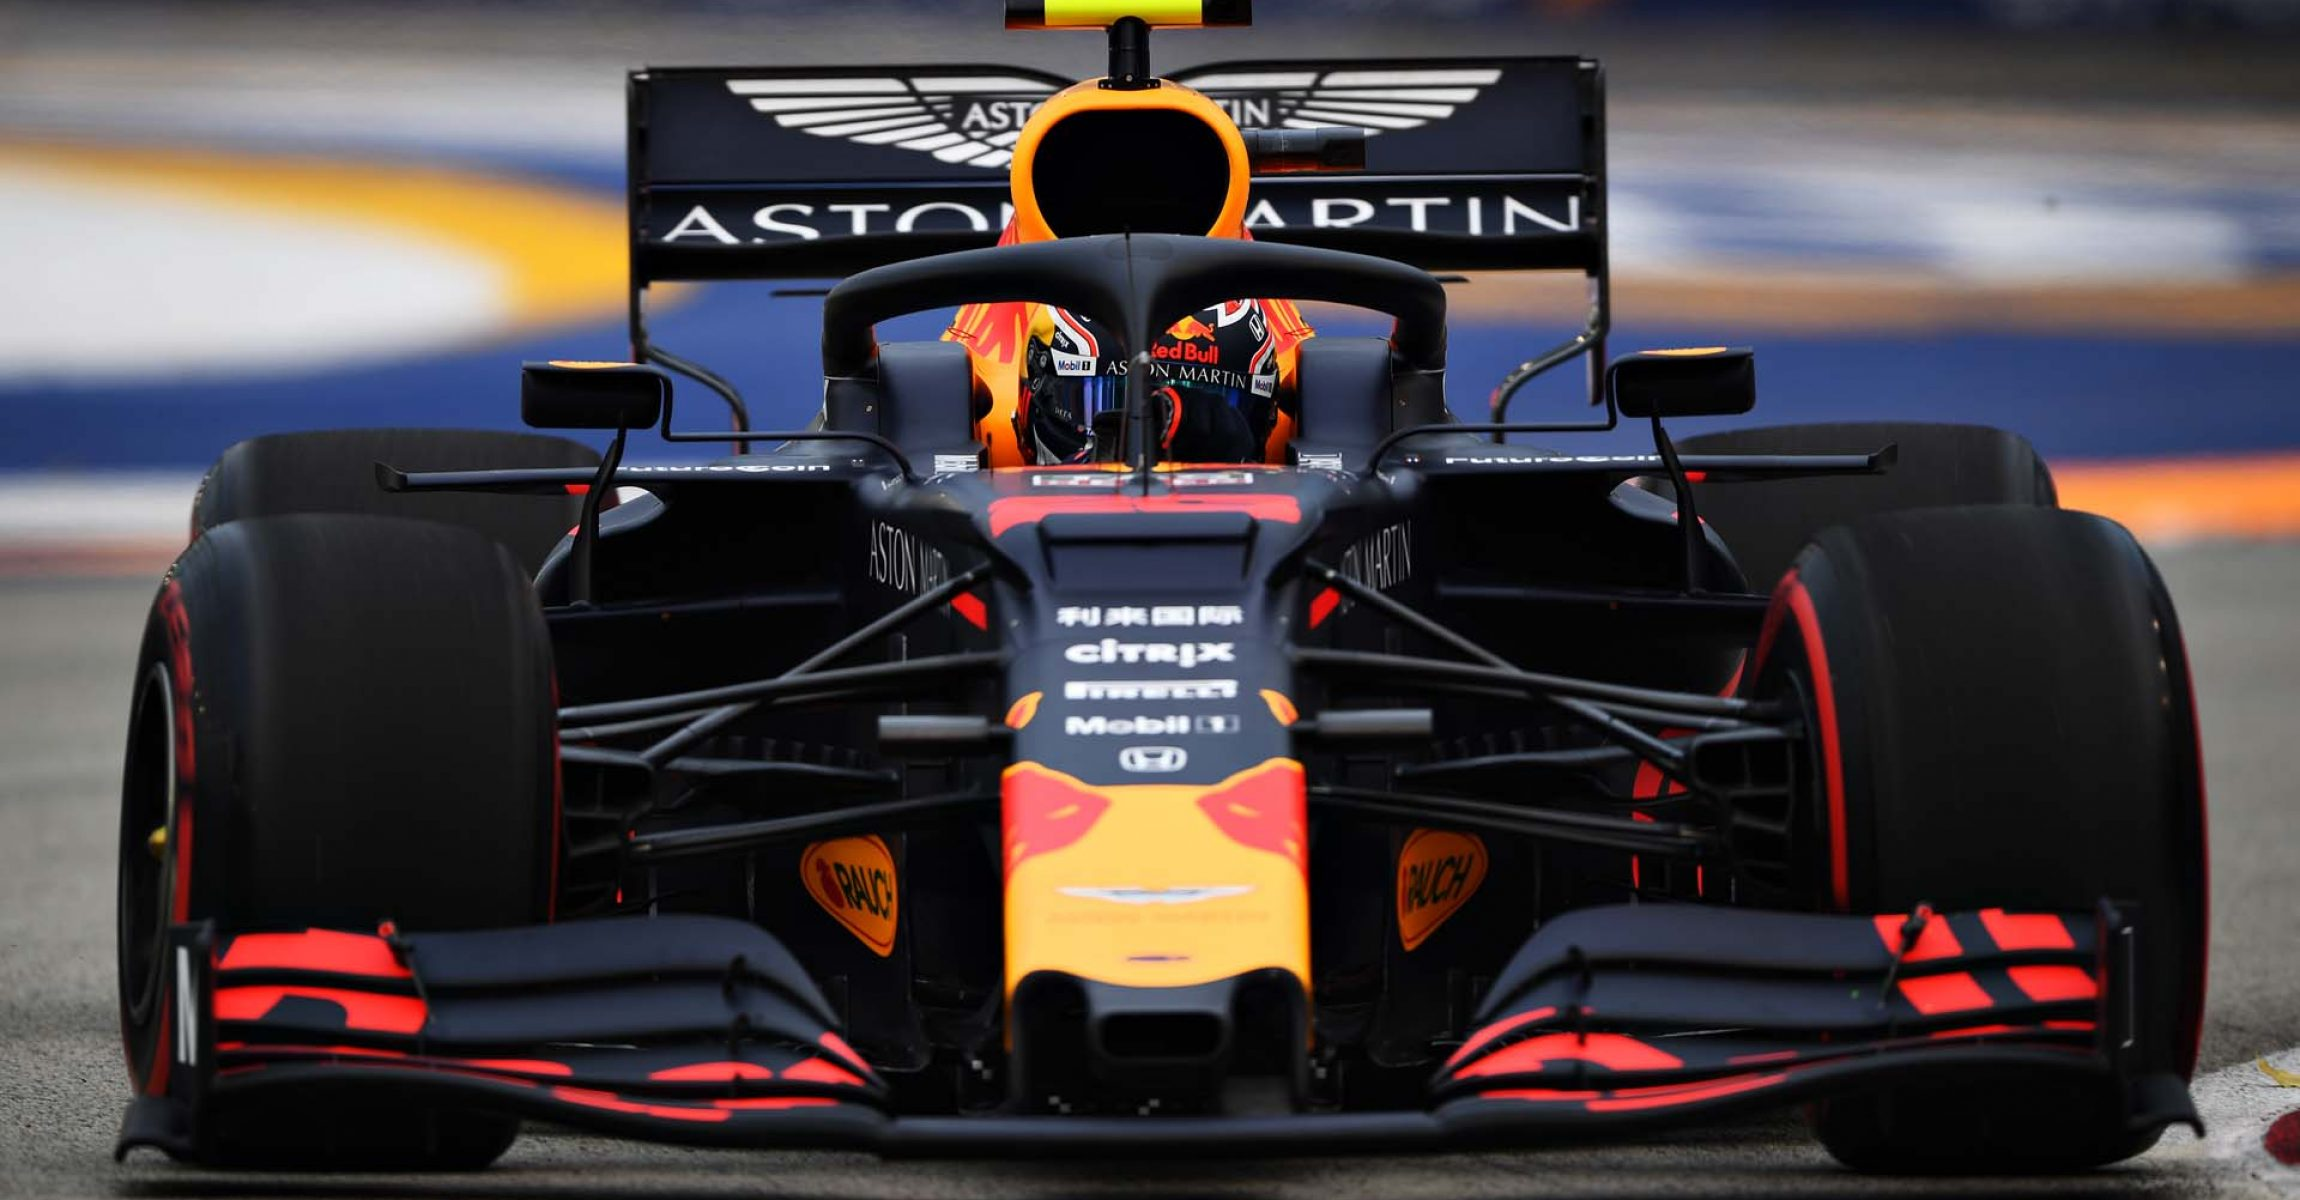 SINGAPORE, SINGAPORE - SEPTEMBER 20: Alexander Albon of Thailand driving the (23) Aston Martin Red Bull Racing RB15 on track during practice for the F1 Grand Prix of Singapore at Marina Bay Street Circuit on September 20, 2019 in Singapore. (Photo by Clive Mason/Getty Images) // Getty Images / Red Bull Content Pool  // AP-21MKQTC6D2111 // Usage for editorial use only //